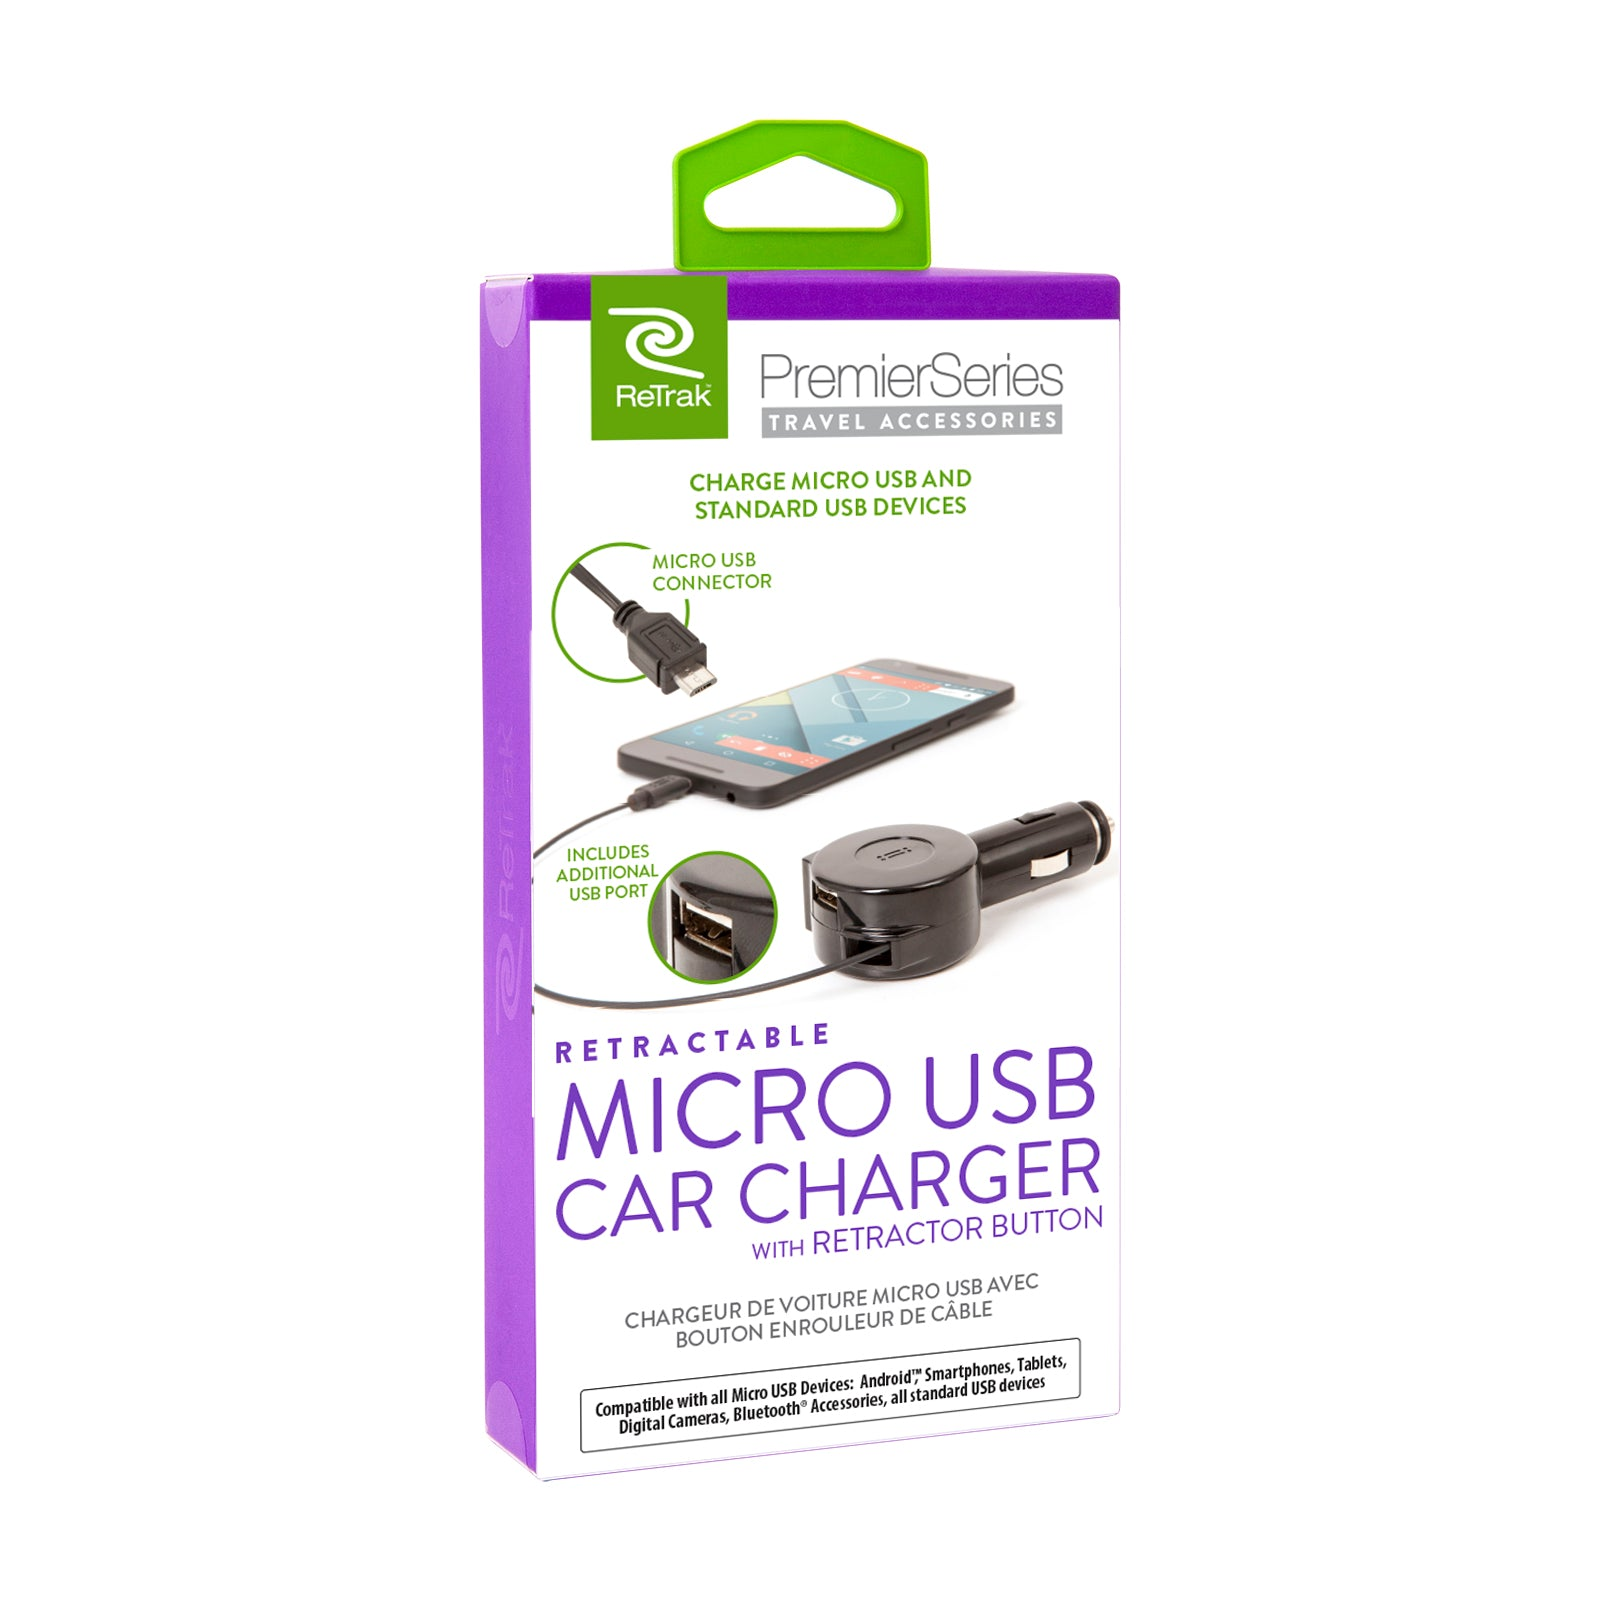 Micro USB Car Charger | Retractable Micro USB Charging Cable